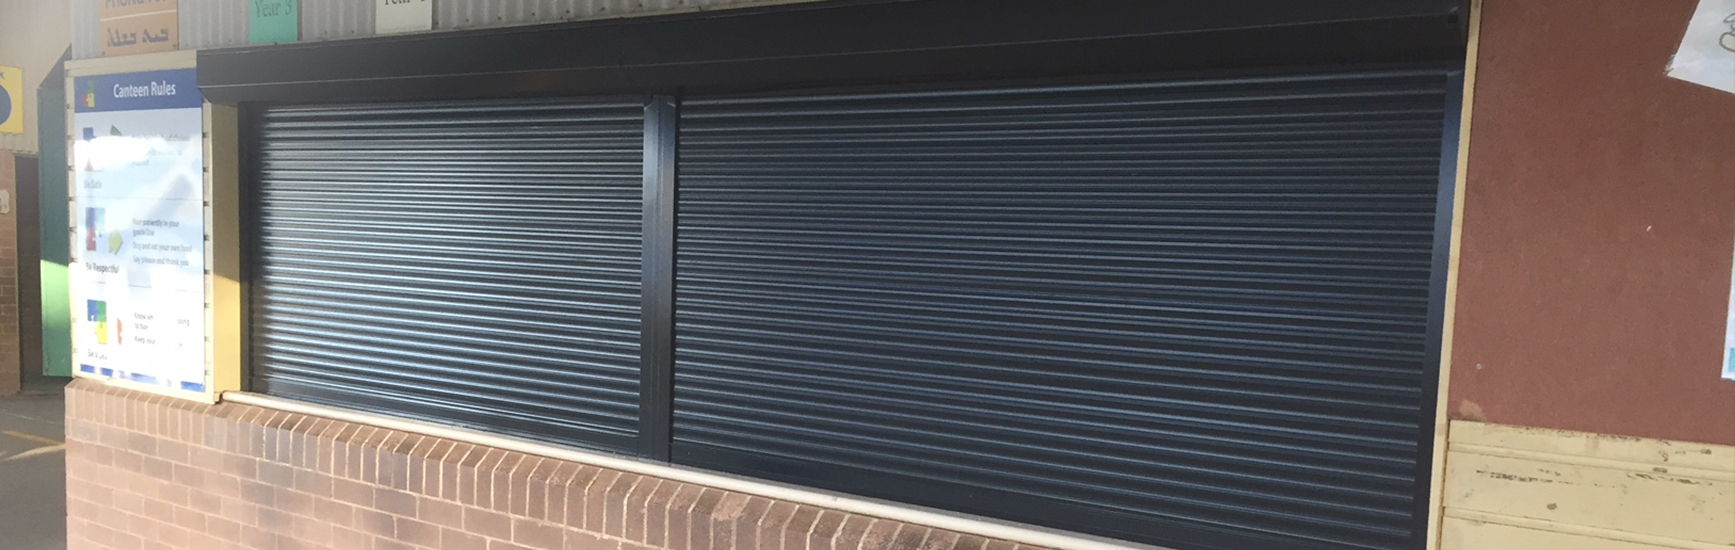 BAL 40 FIRE GUARD ROLLER SHUTTERS